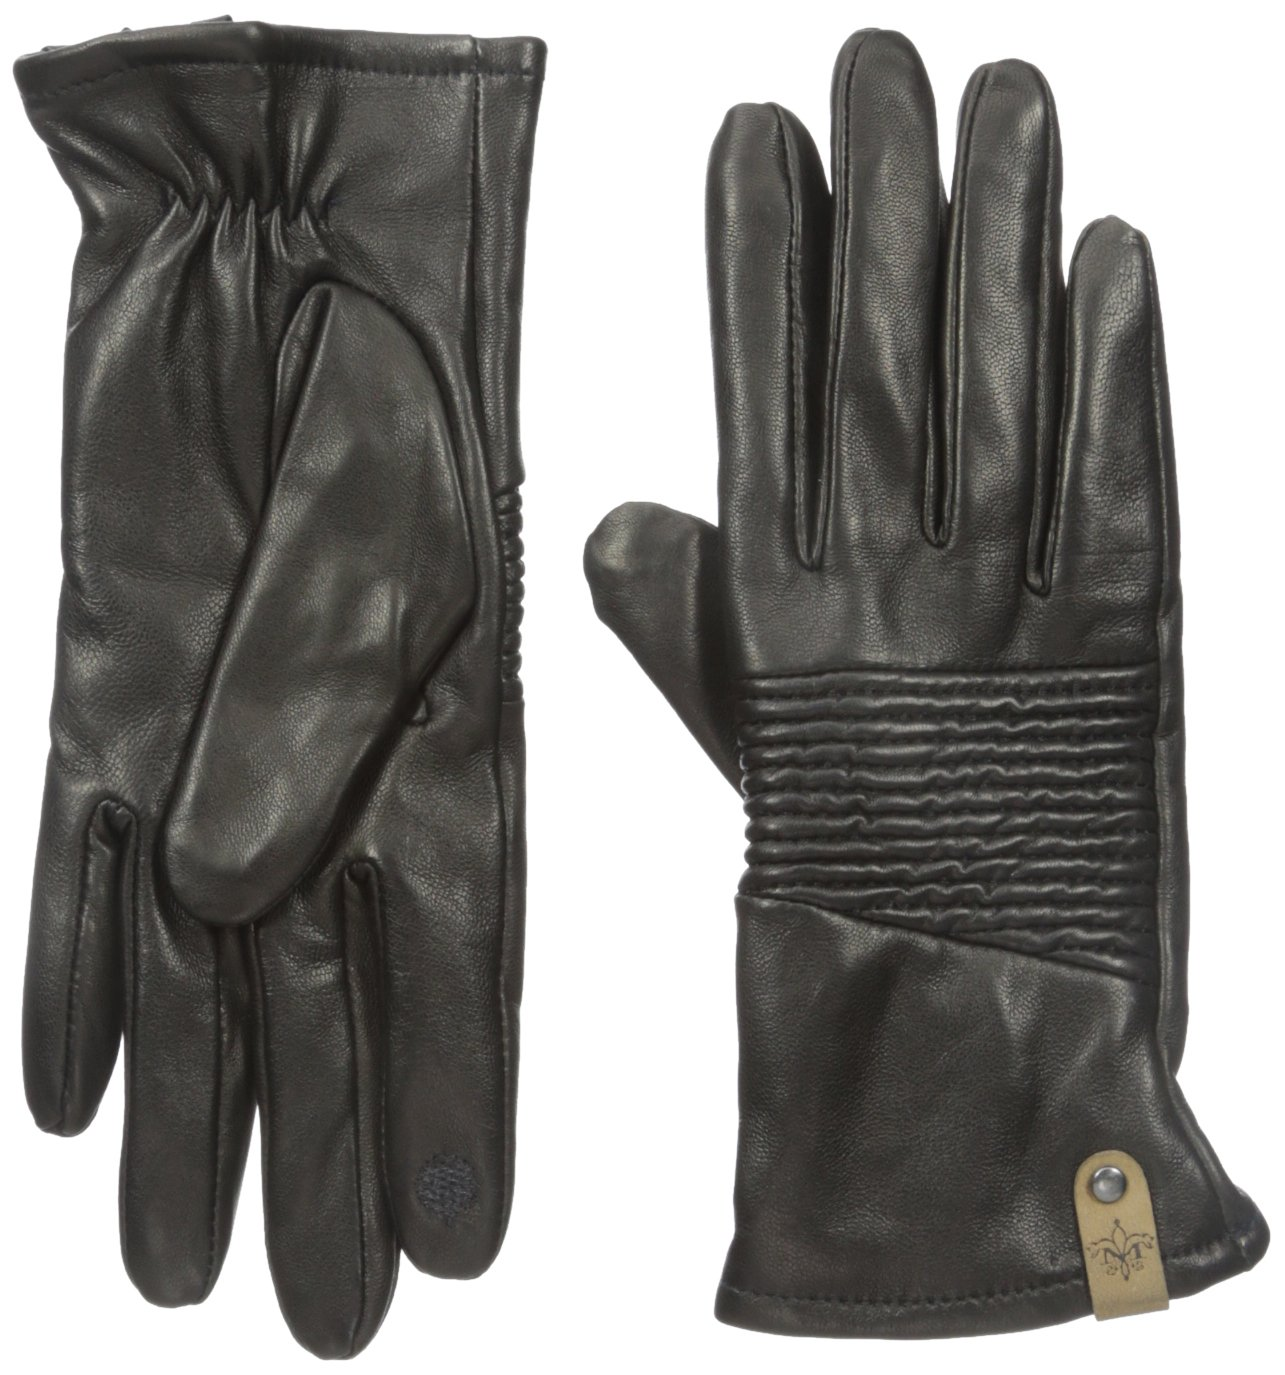 Mackage Women's Nira Leather Touchscreen Glove with Ribbed Detail, Black, Large